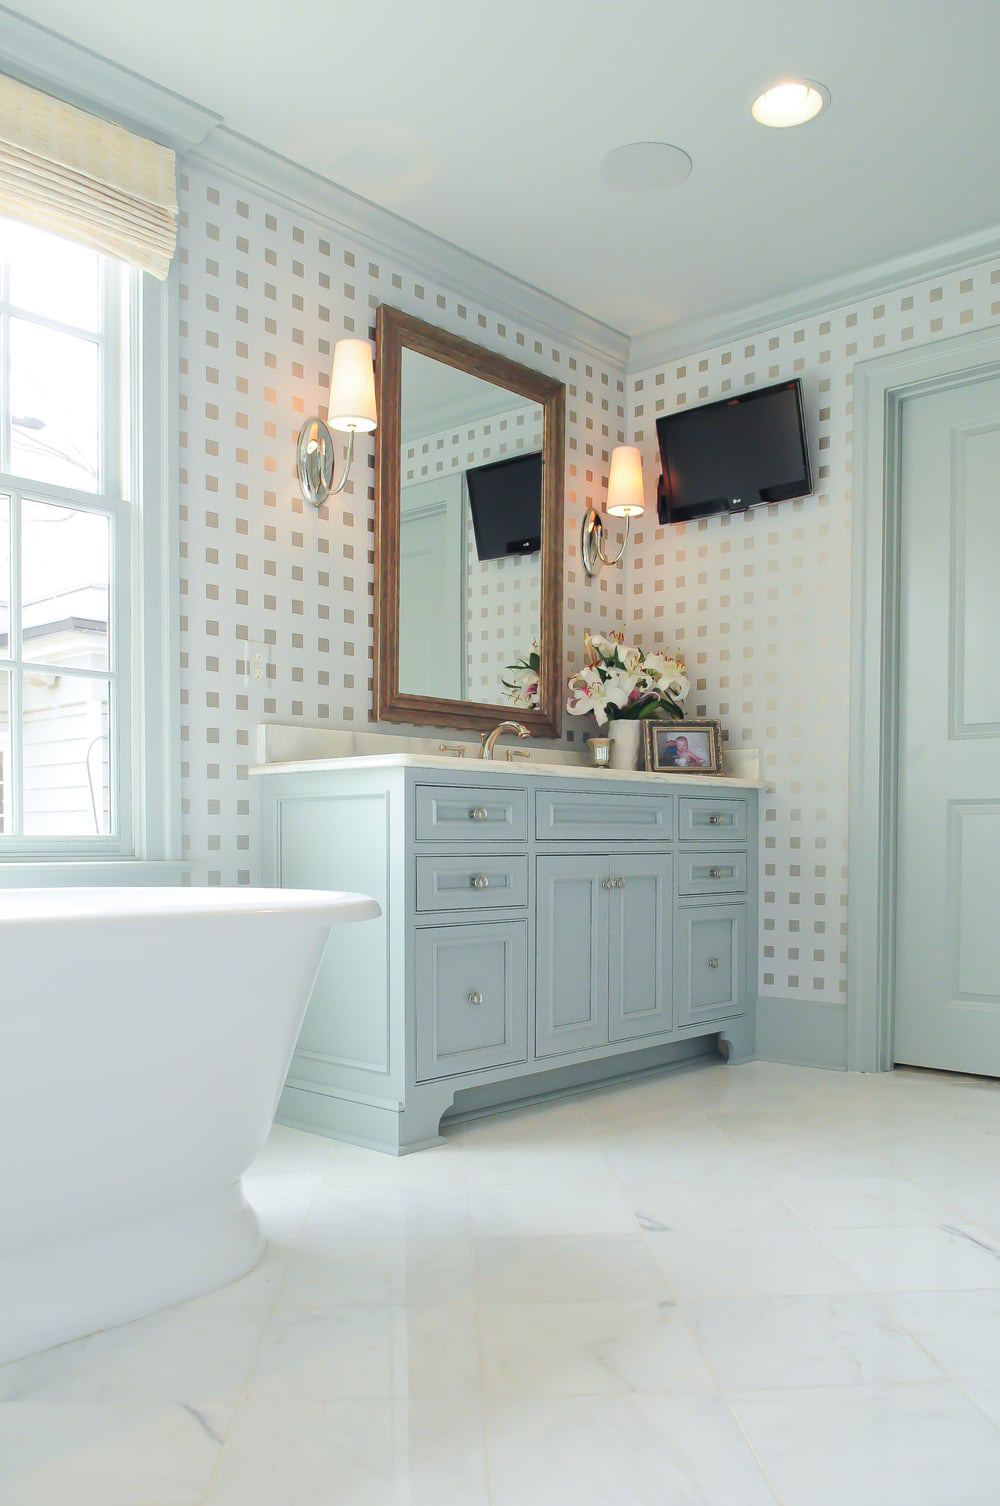 Heidi's Interiors who choose the color palette and wallpaper for this project.